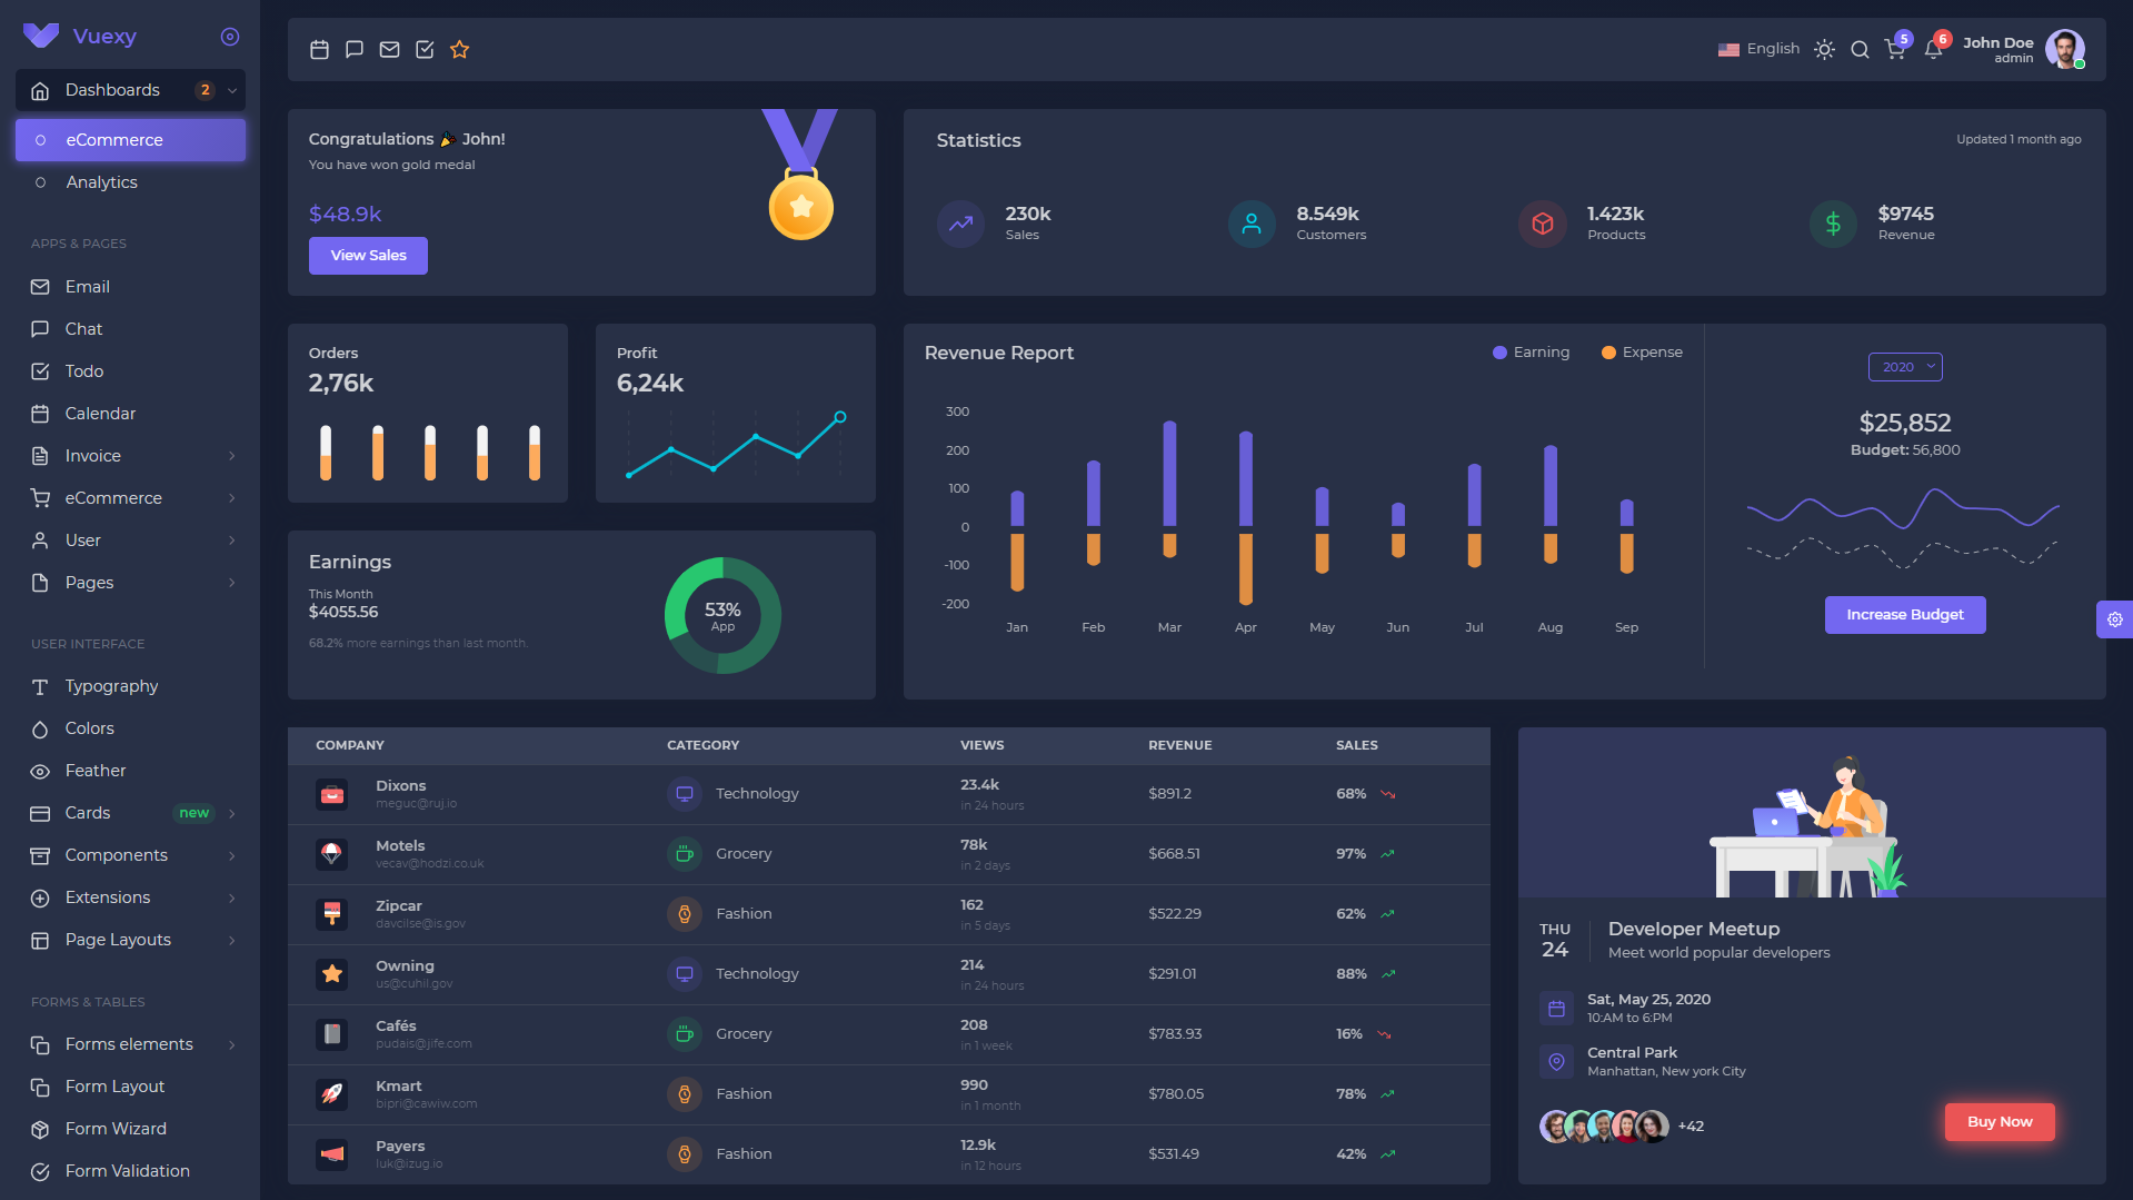 Vuexy - Vuejs Dark Theme Admin Dashboard Template